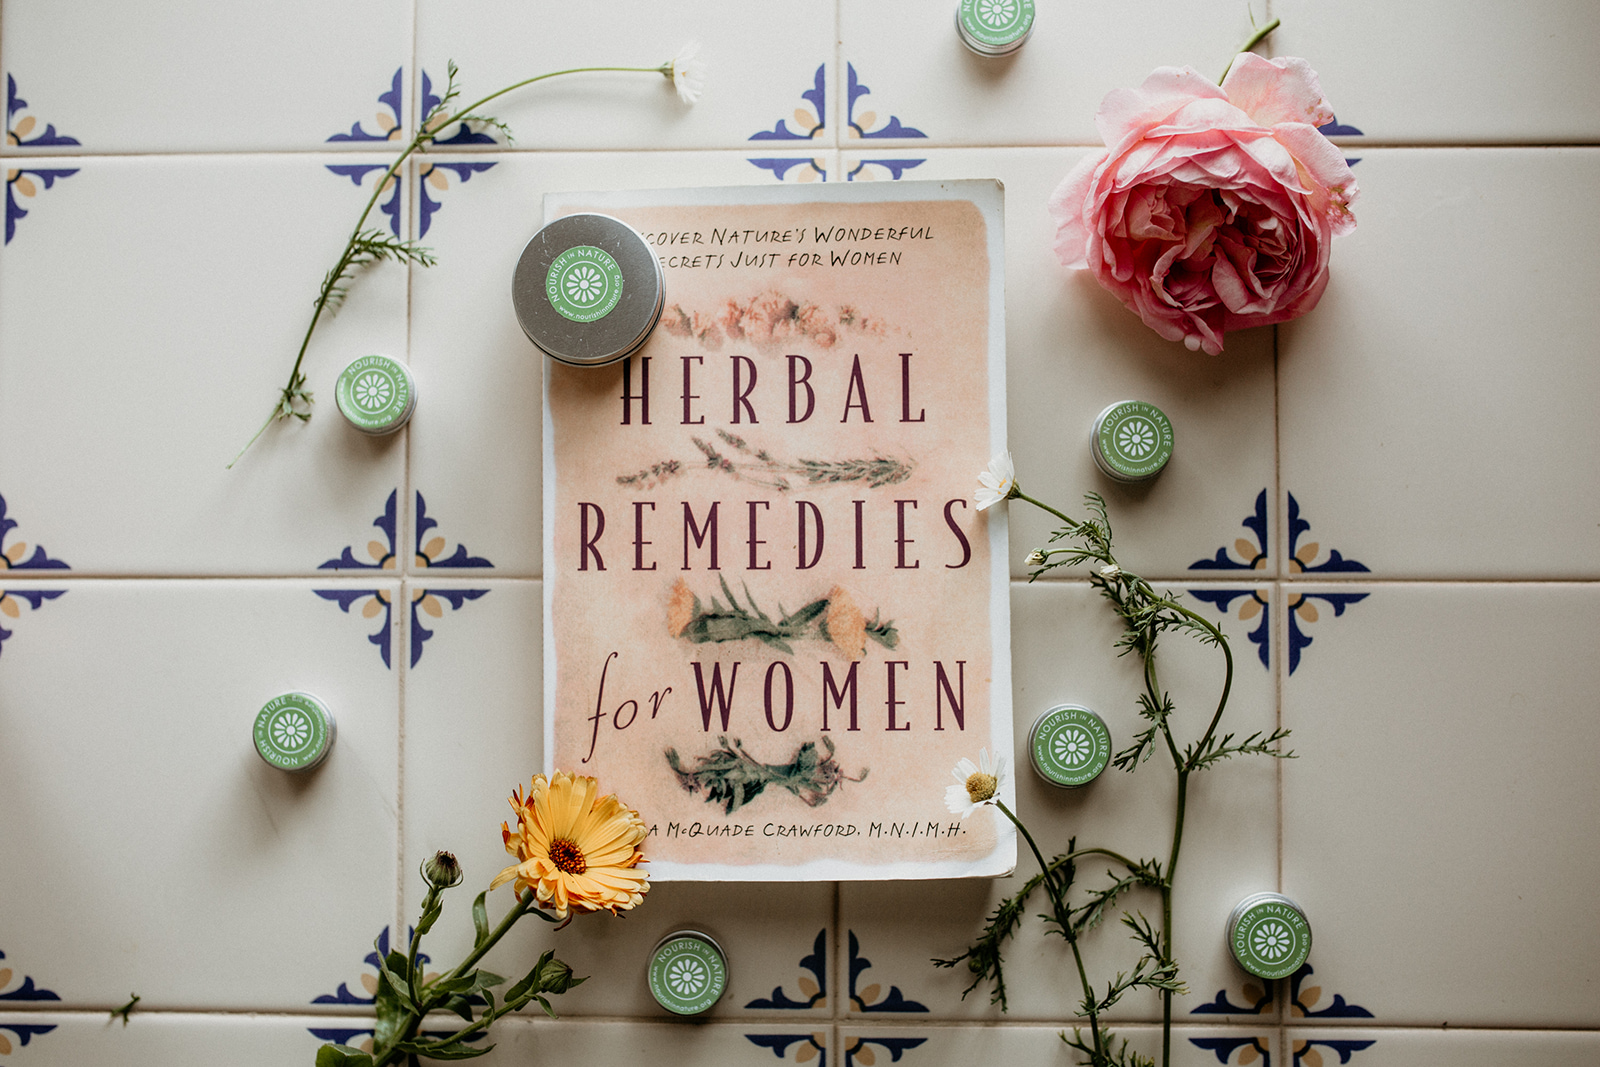 herbs, herbal medicine, herbs for women, herbal medicine for women, nourish, nourish in nature, yoga, yoga for women, yoga retreats, yoga in portugal, retreats in portugal, nutrition for women, hormone health, well being, integrated health